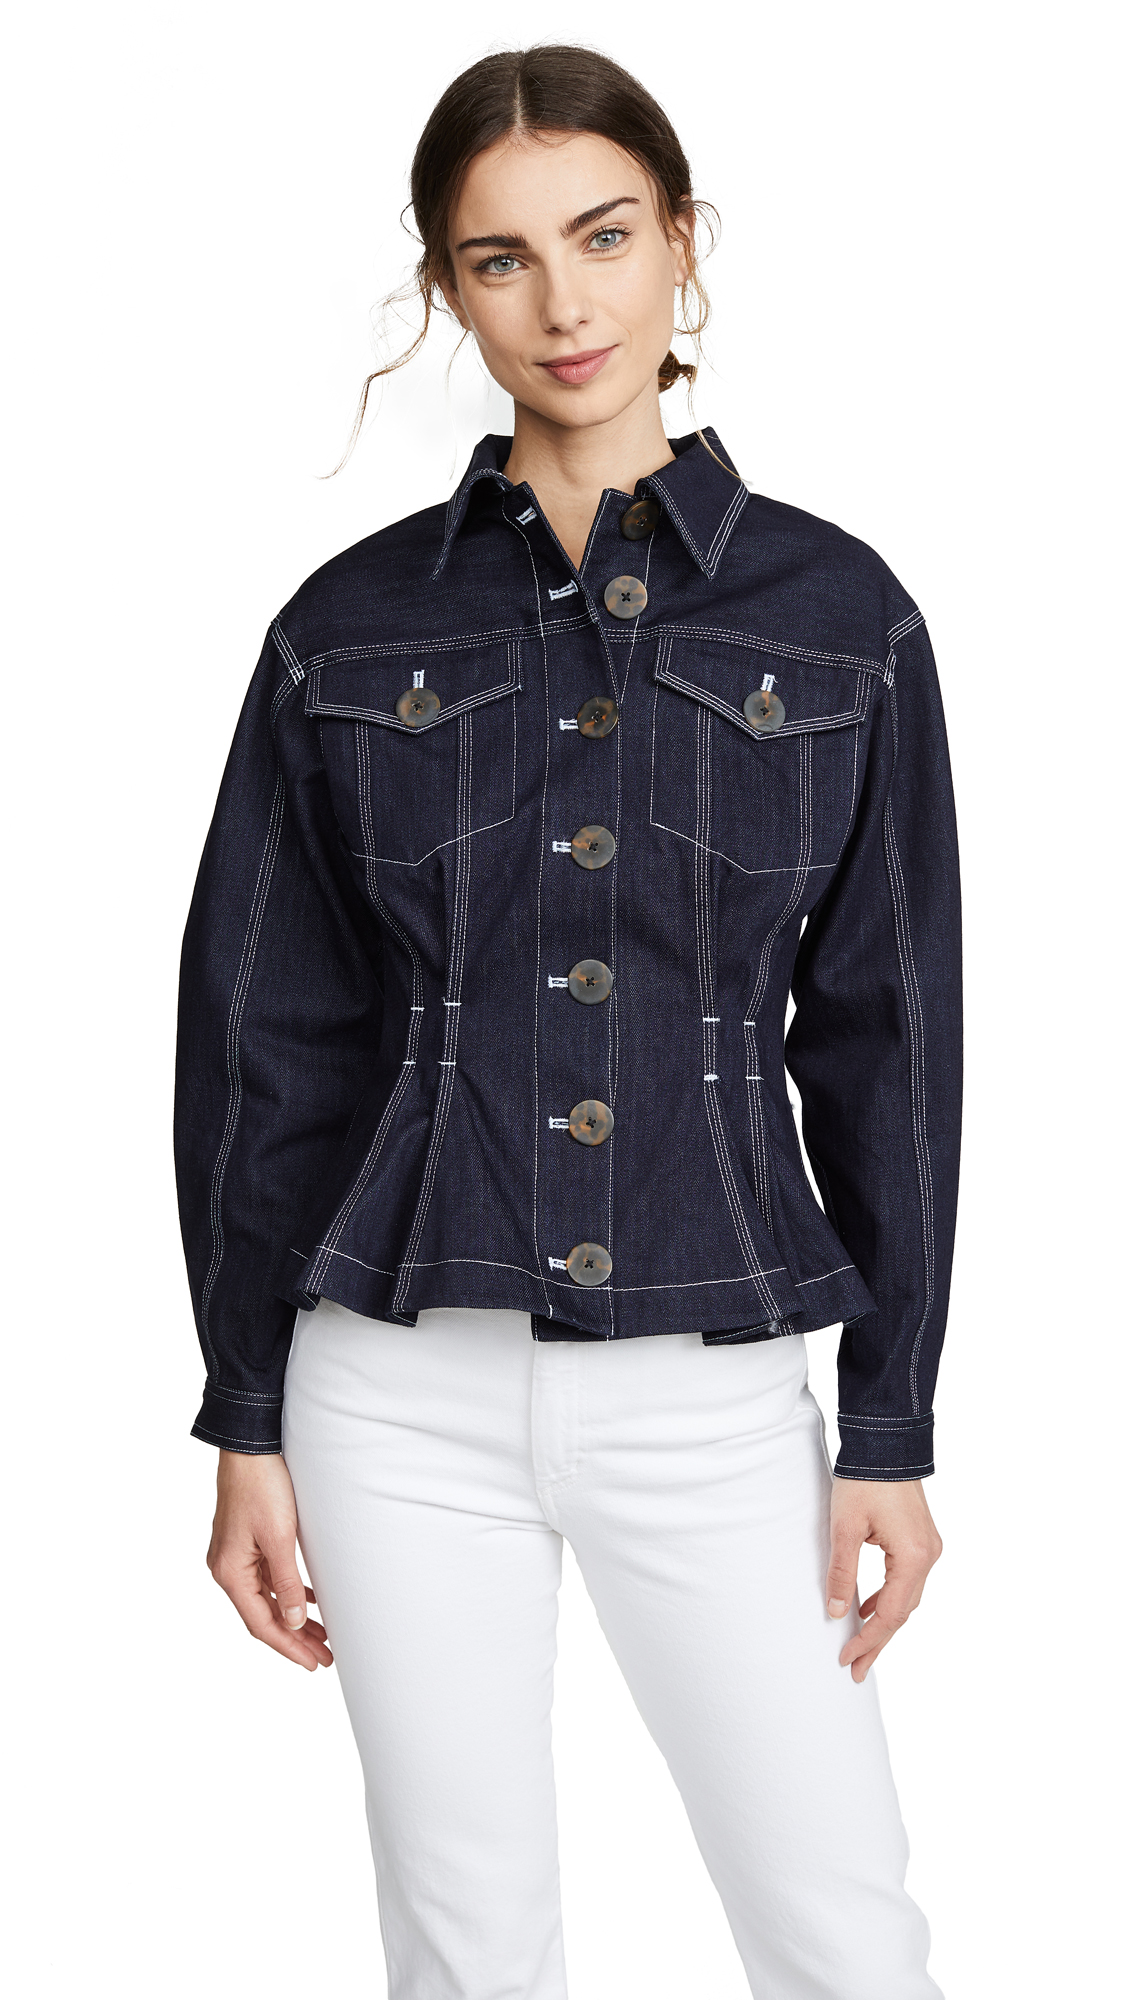 Acler Priestly Denim Jacket - Dark Navy